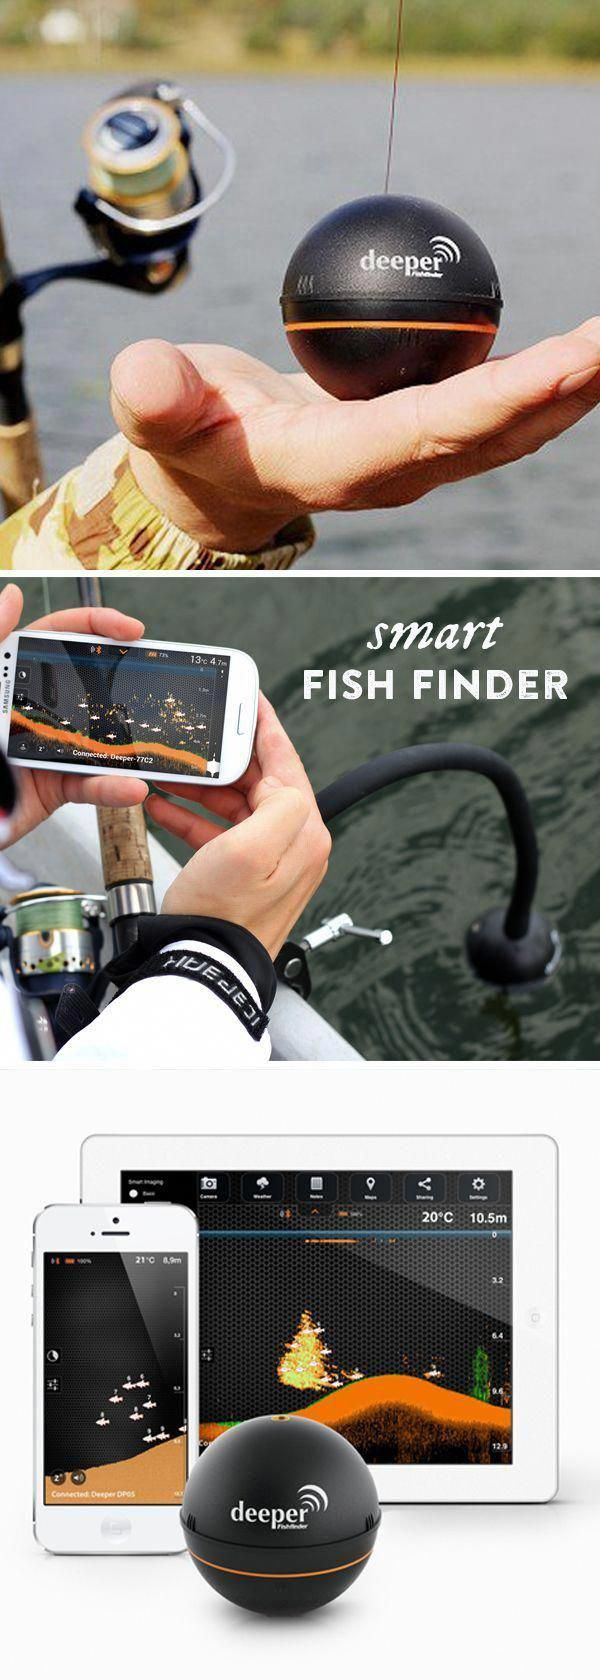 fishing ideas which are the best fishingideas Fish